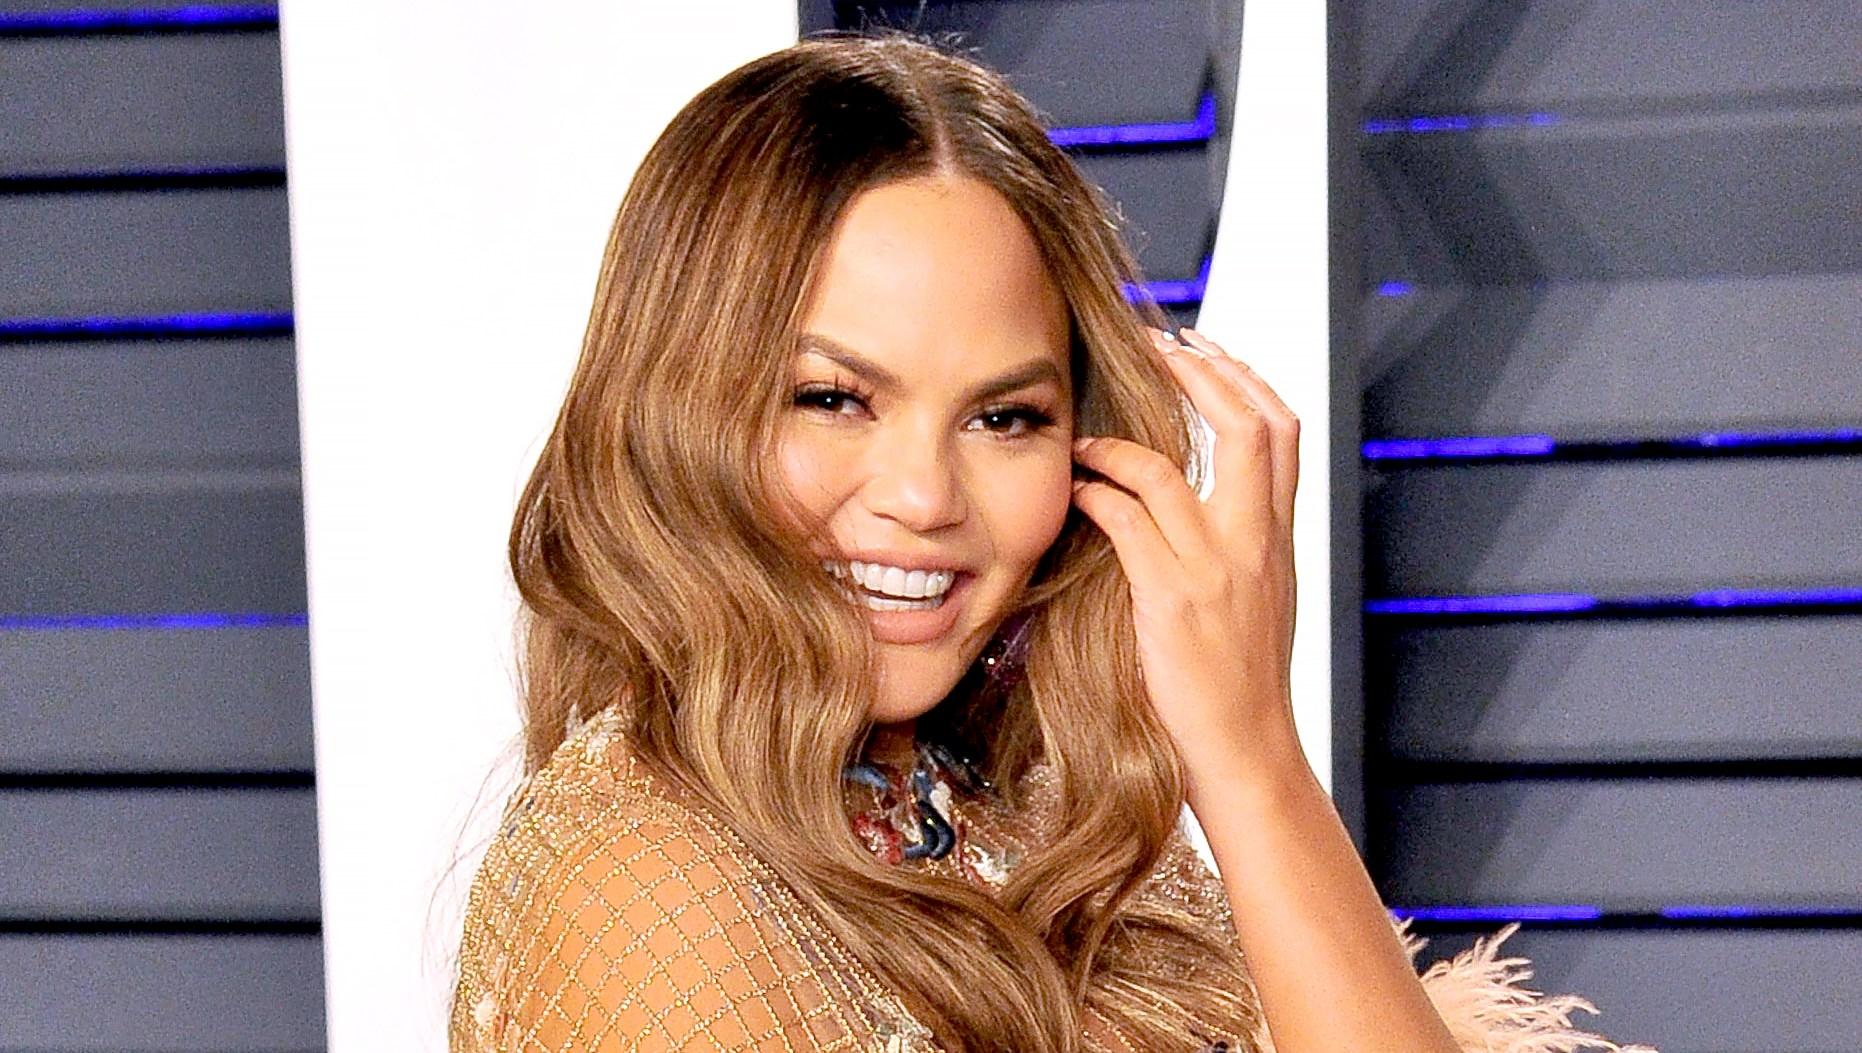 Chrissy Teigen Is 'Truly Sorry for Spoiling' 'The Voice' Season 16 Finale